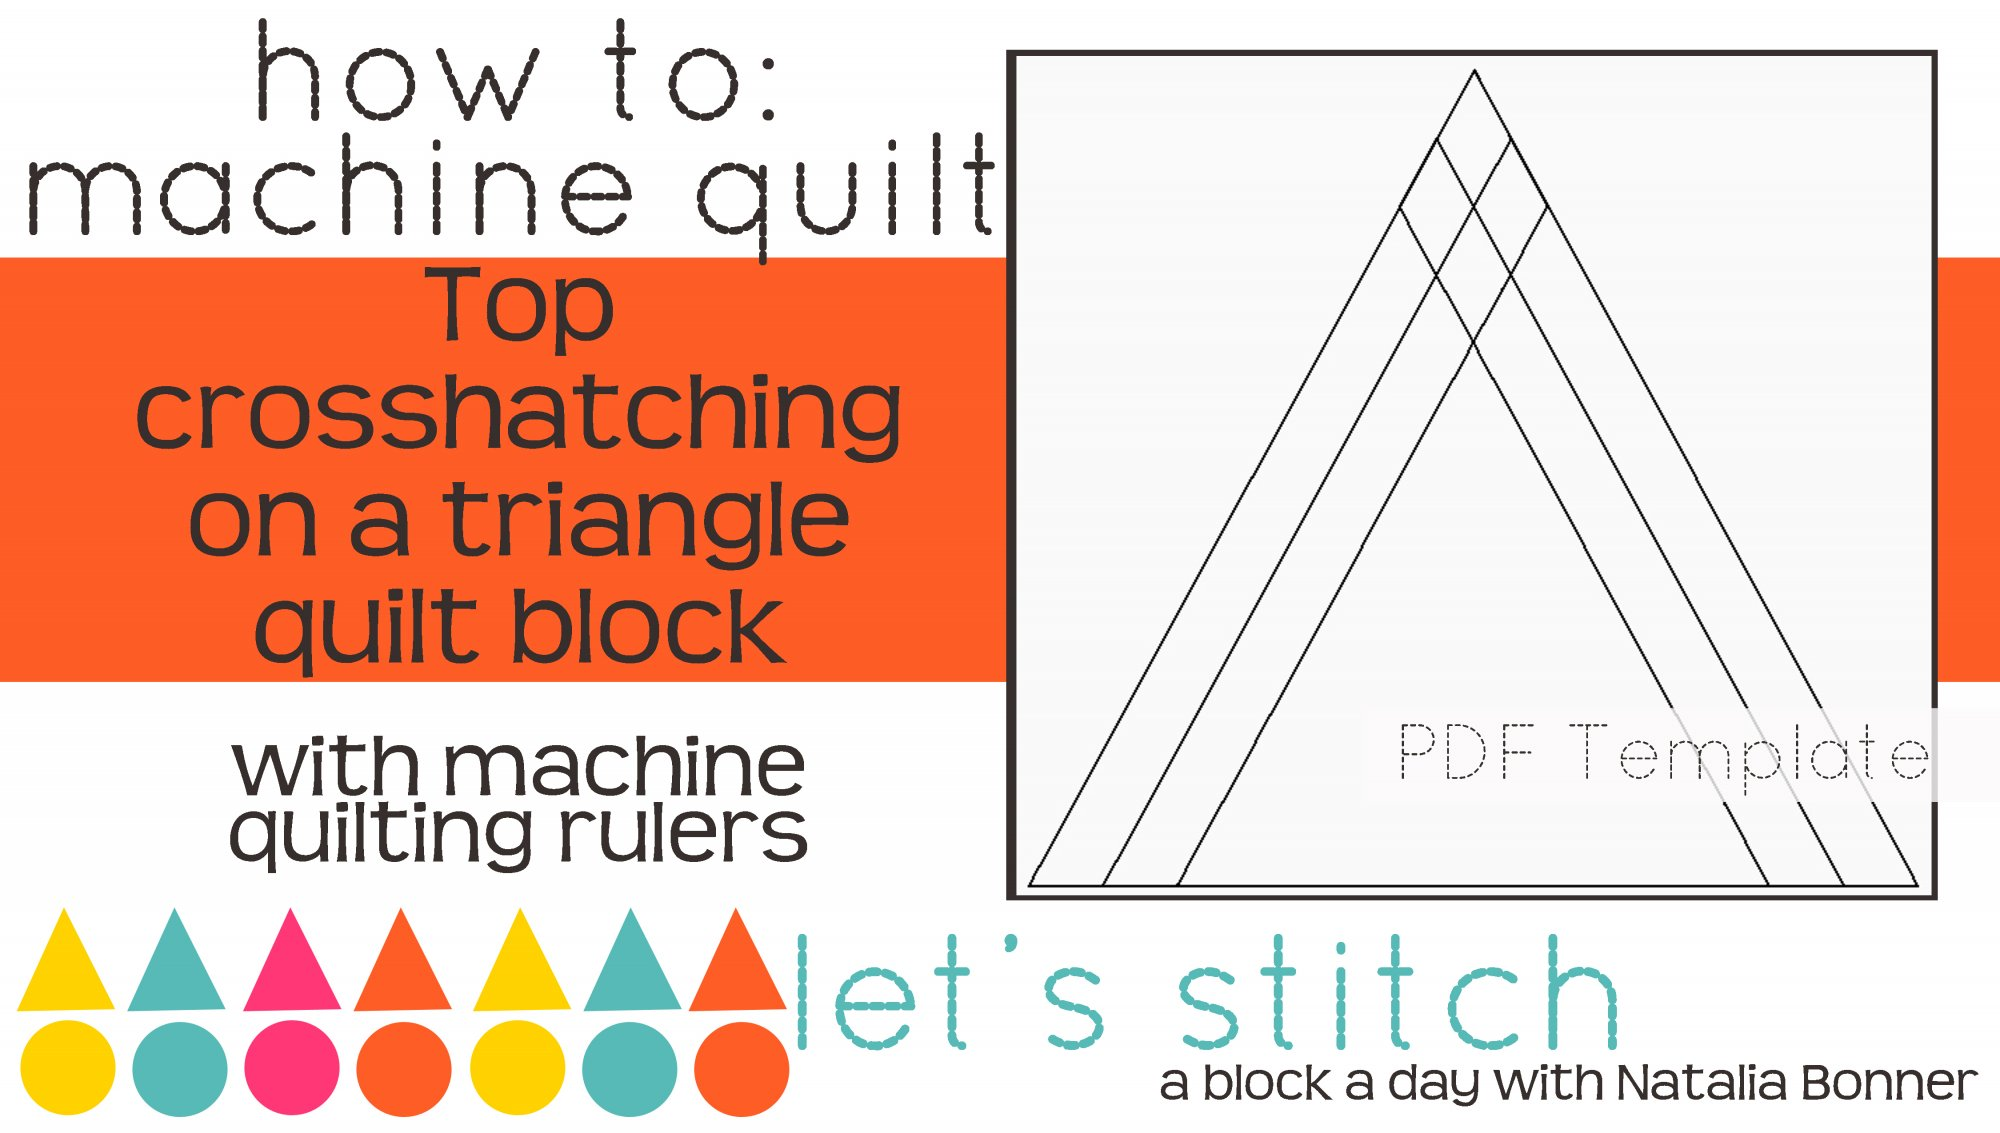 Let's Stitch - A Block a Day With Natalia Bonner - PDF - Top Crosshatching on a Triangle